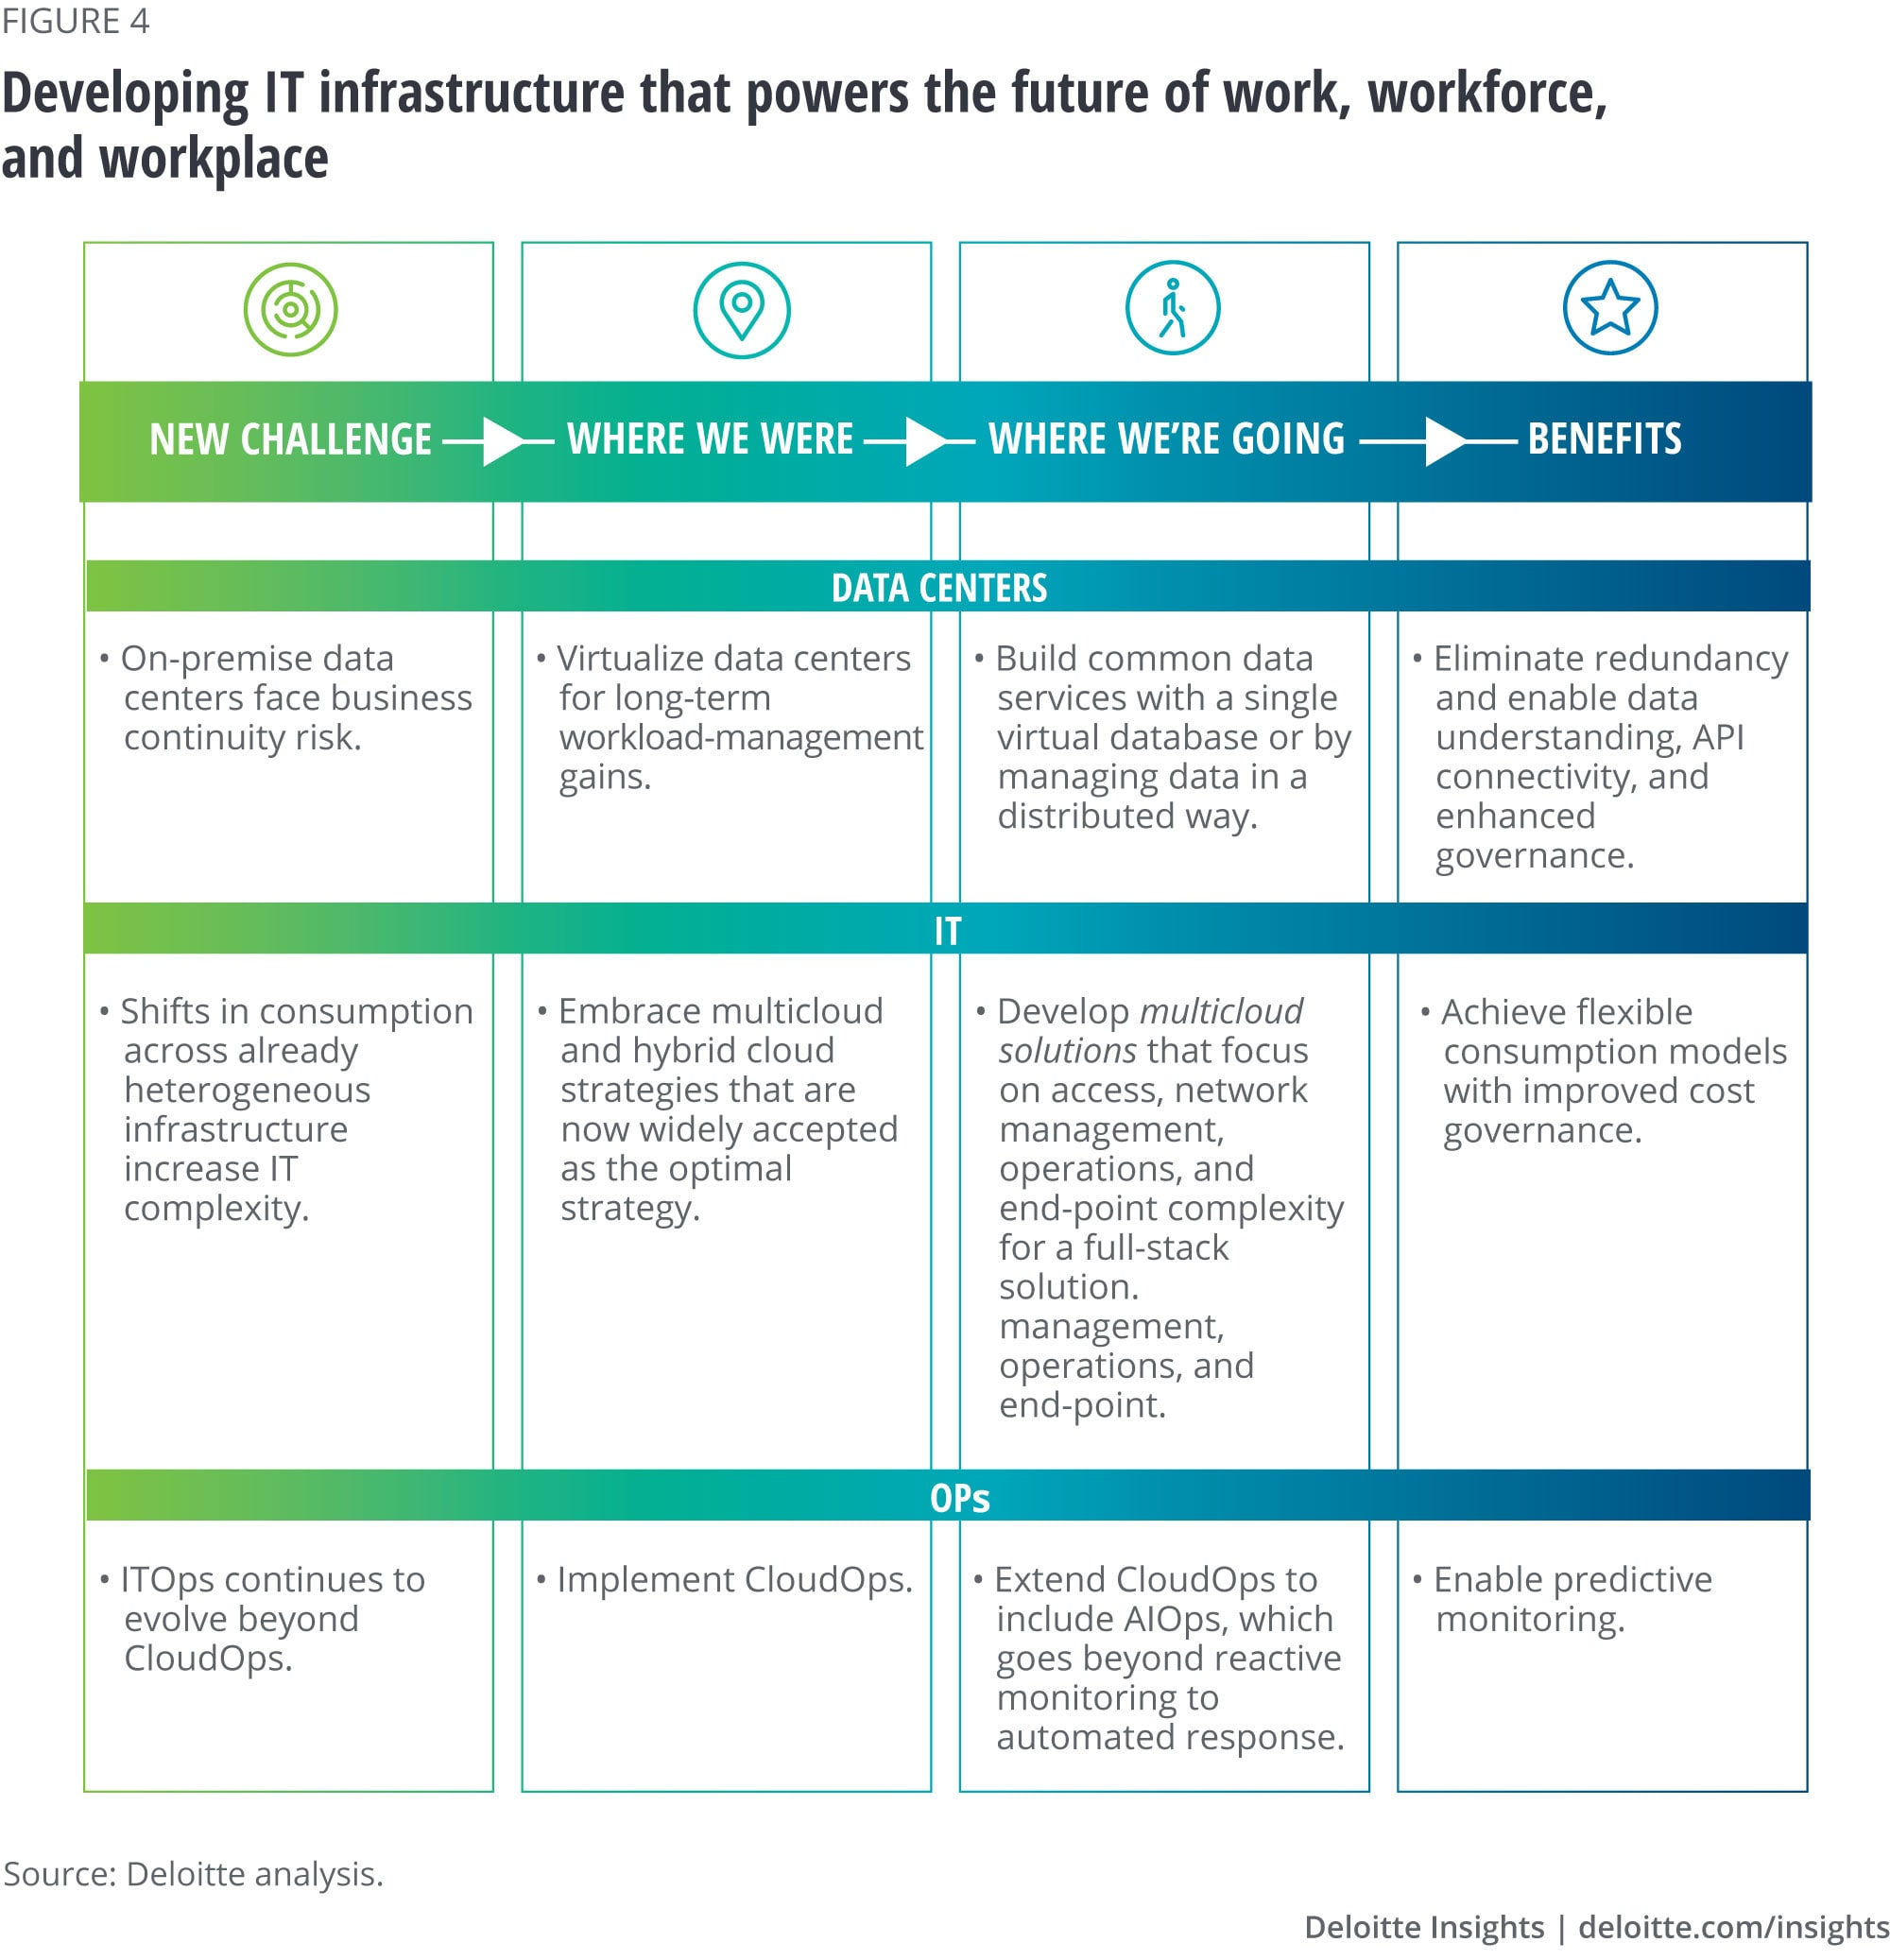 Developing IT infrastructure that powers the future of work, workforce, and workplace